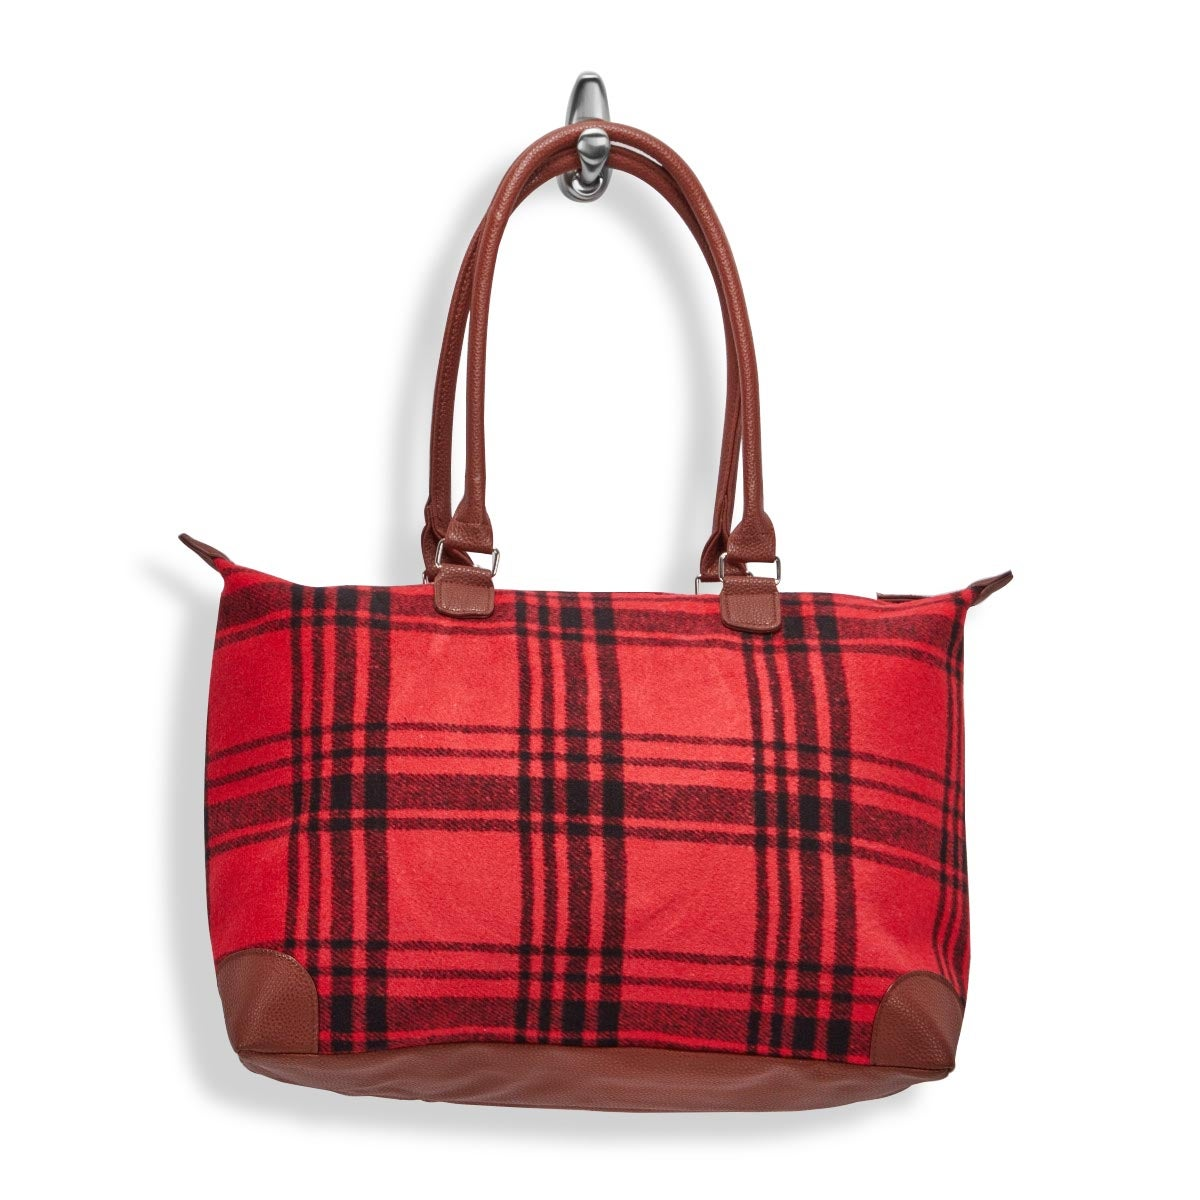 Lds red large flannel tote bag